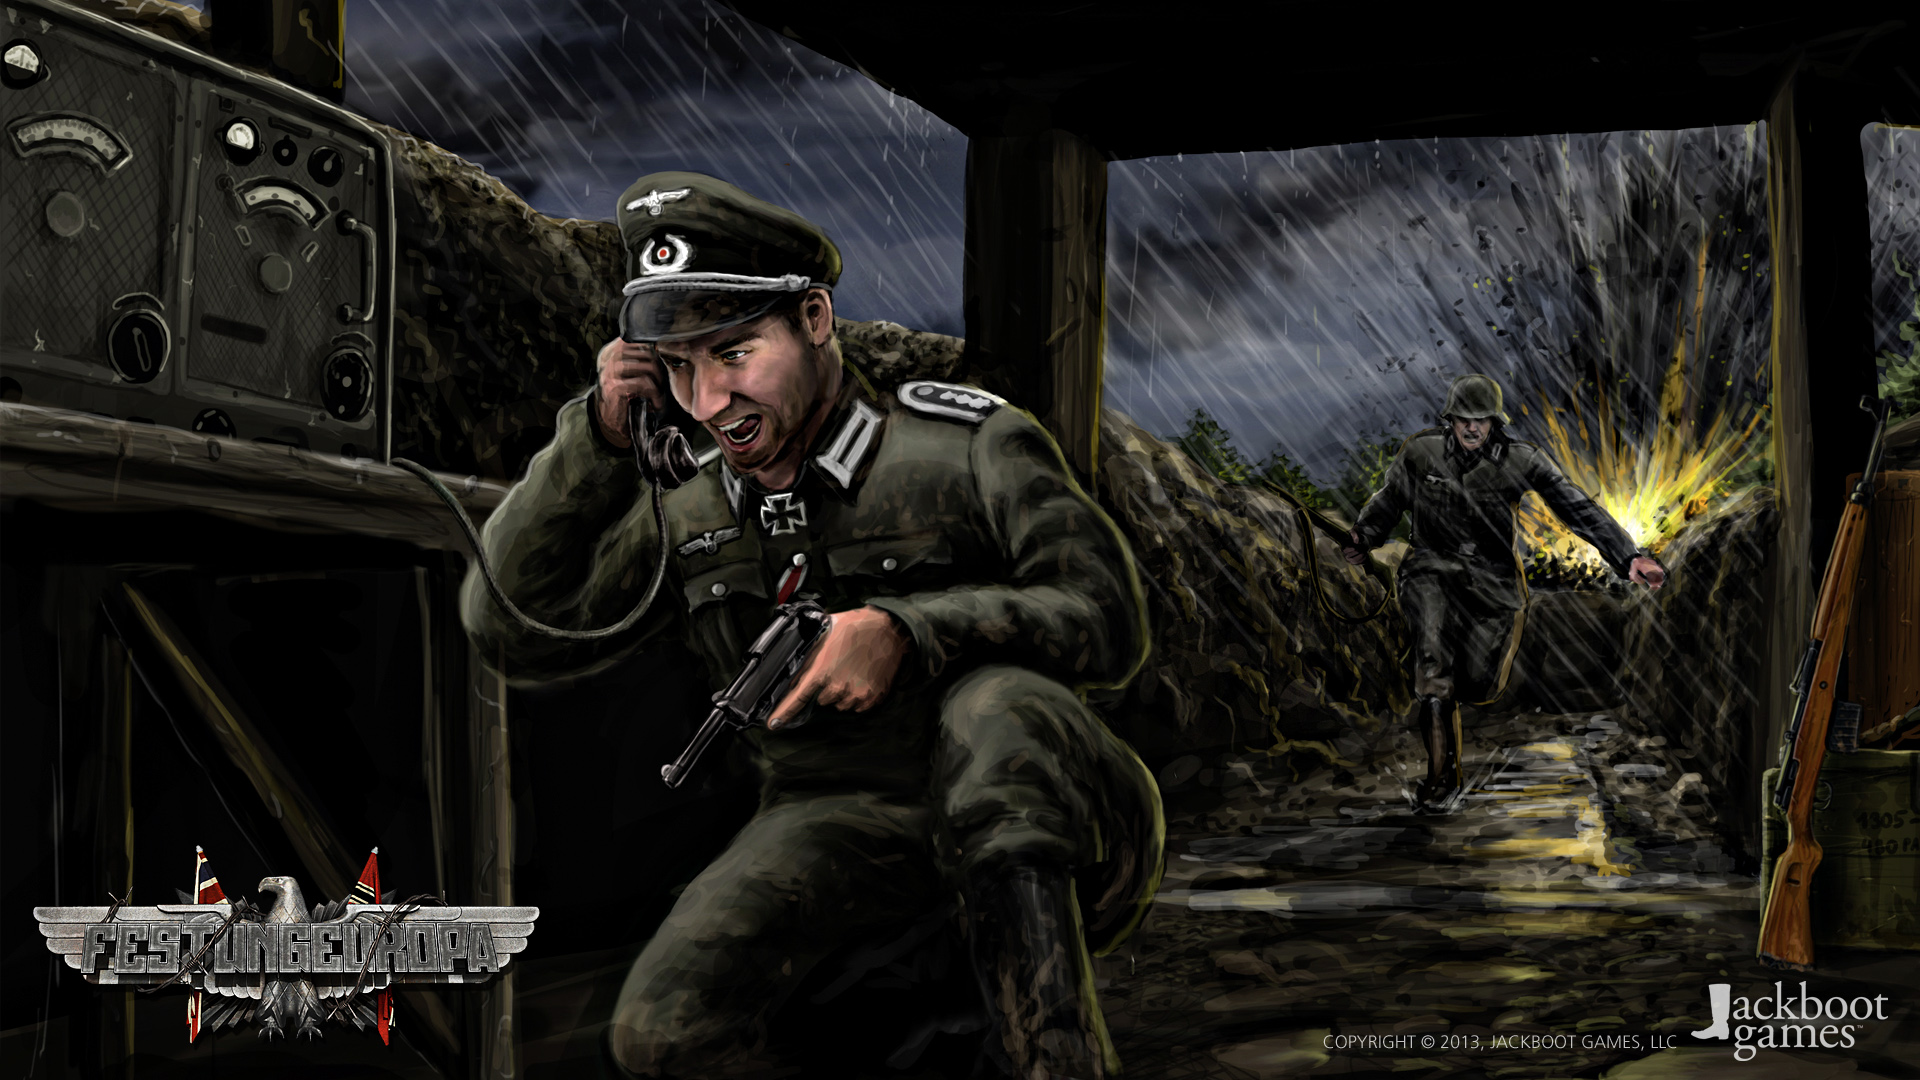 german officer concept art image festung europa indie db